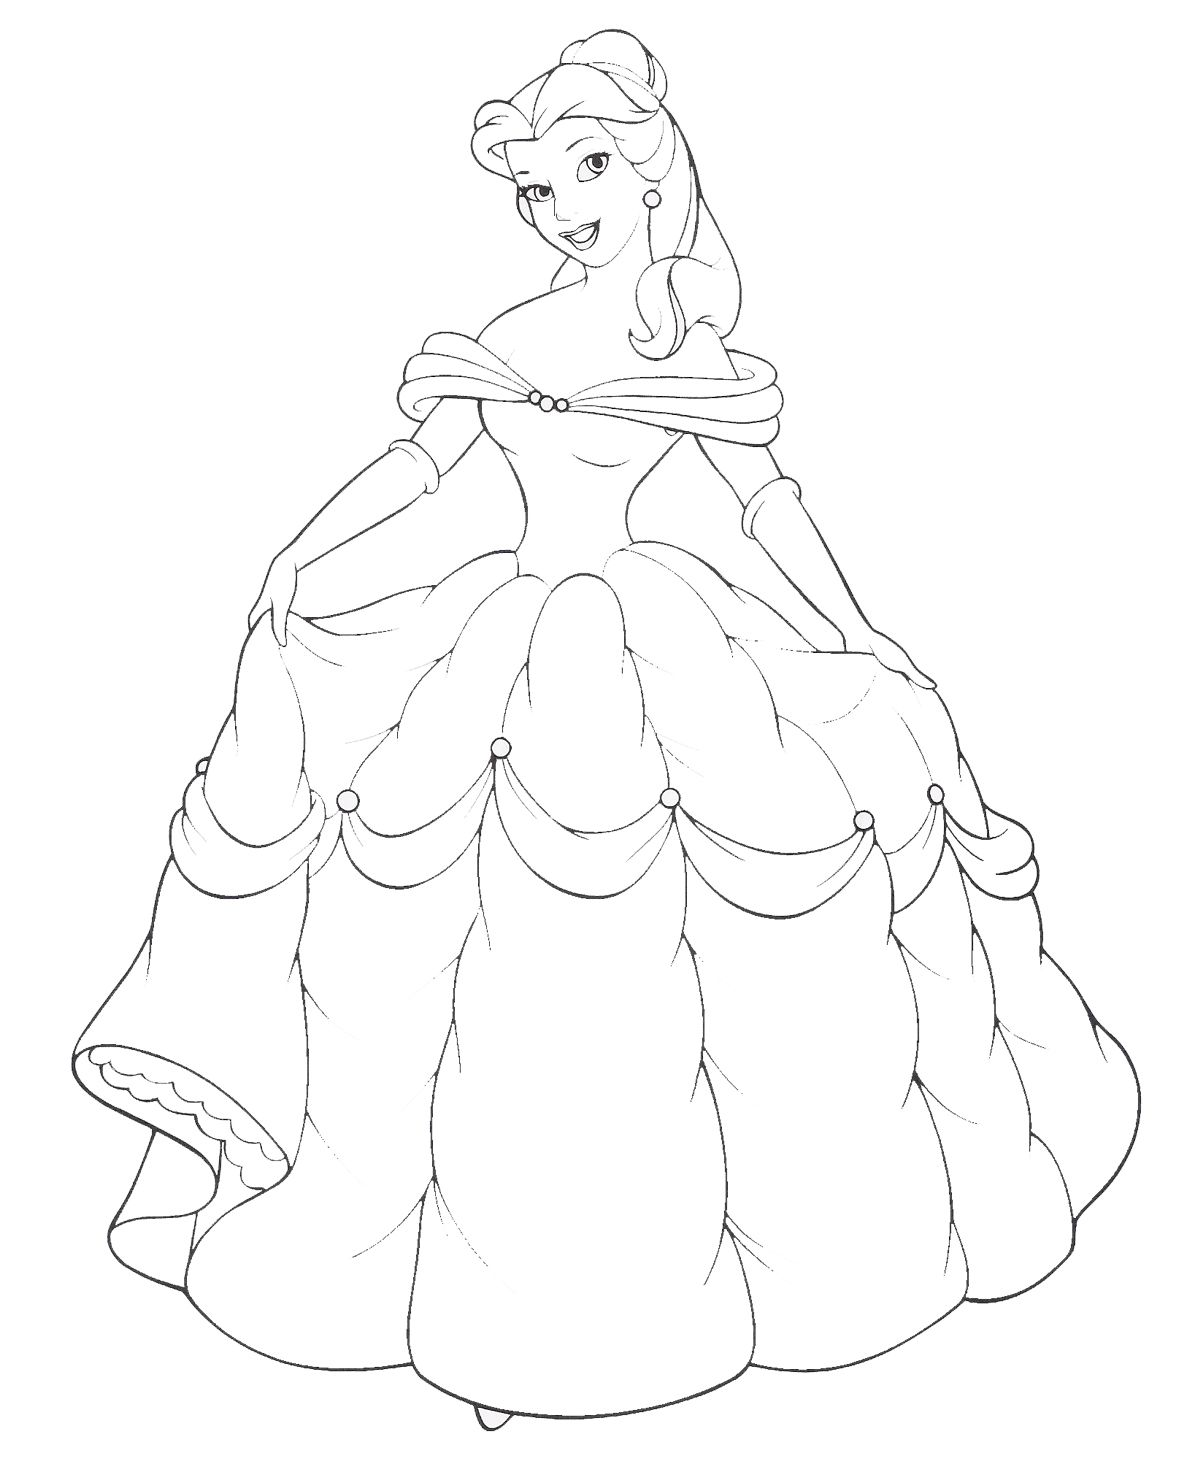 Coloring book disney princess - Disney Princess Belle And Her Gown Coloring Sheet To Paint On Canvas As A Silhouette